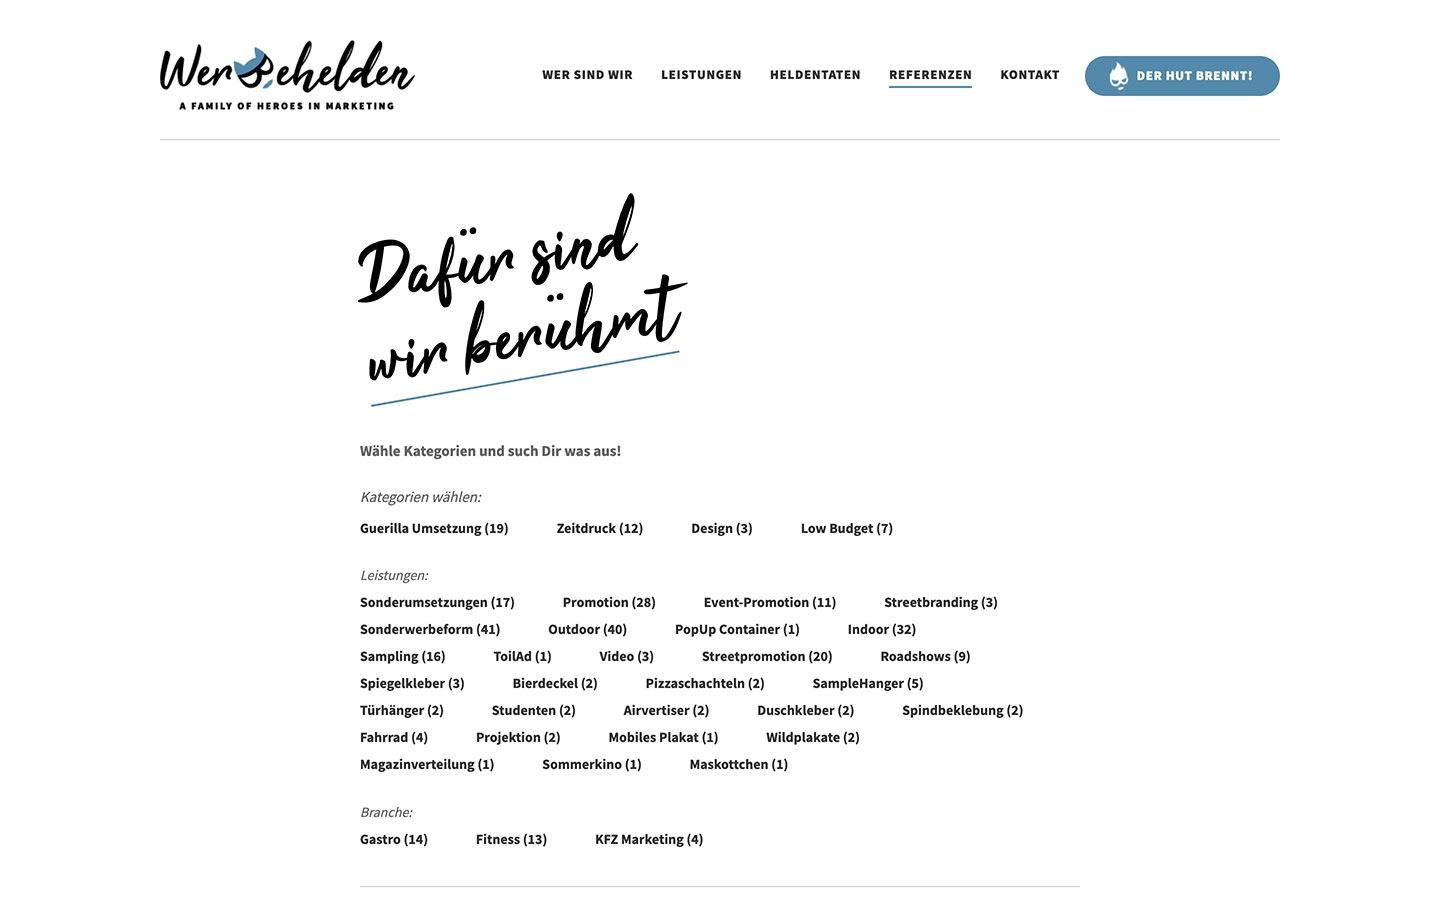 Werbehelden | werbehelden.com | 2019 (Screen Only 02) © echonet communication